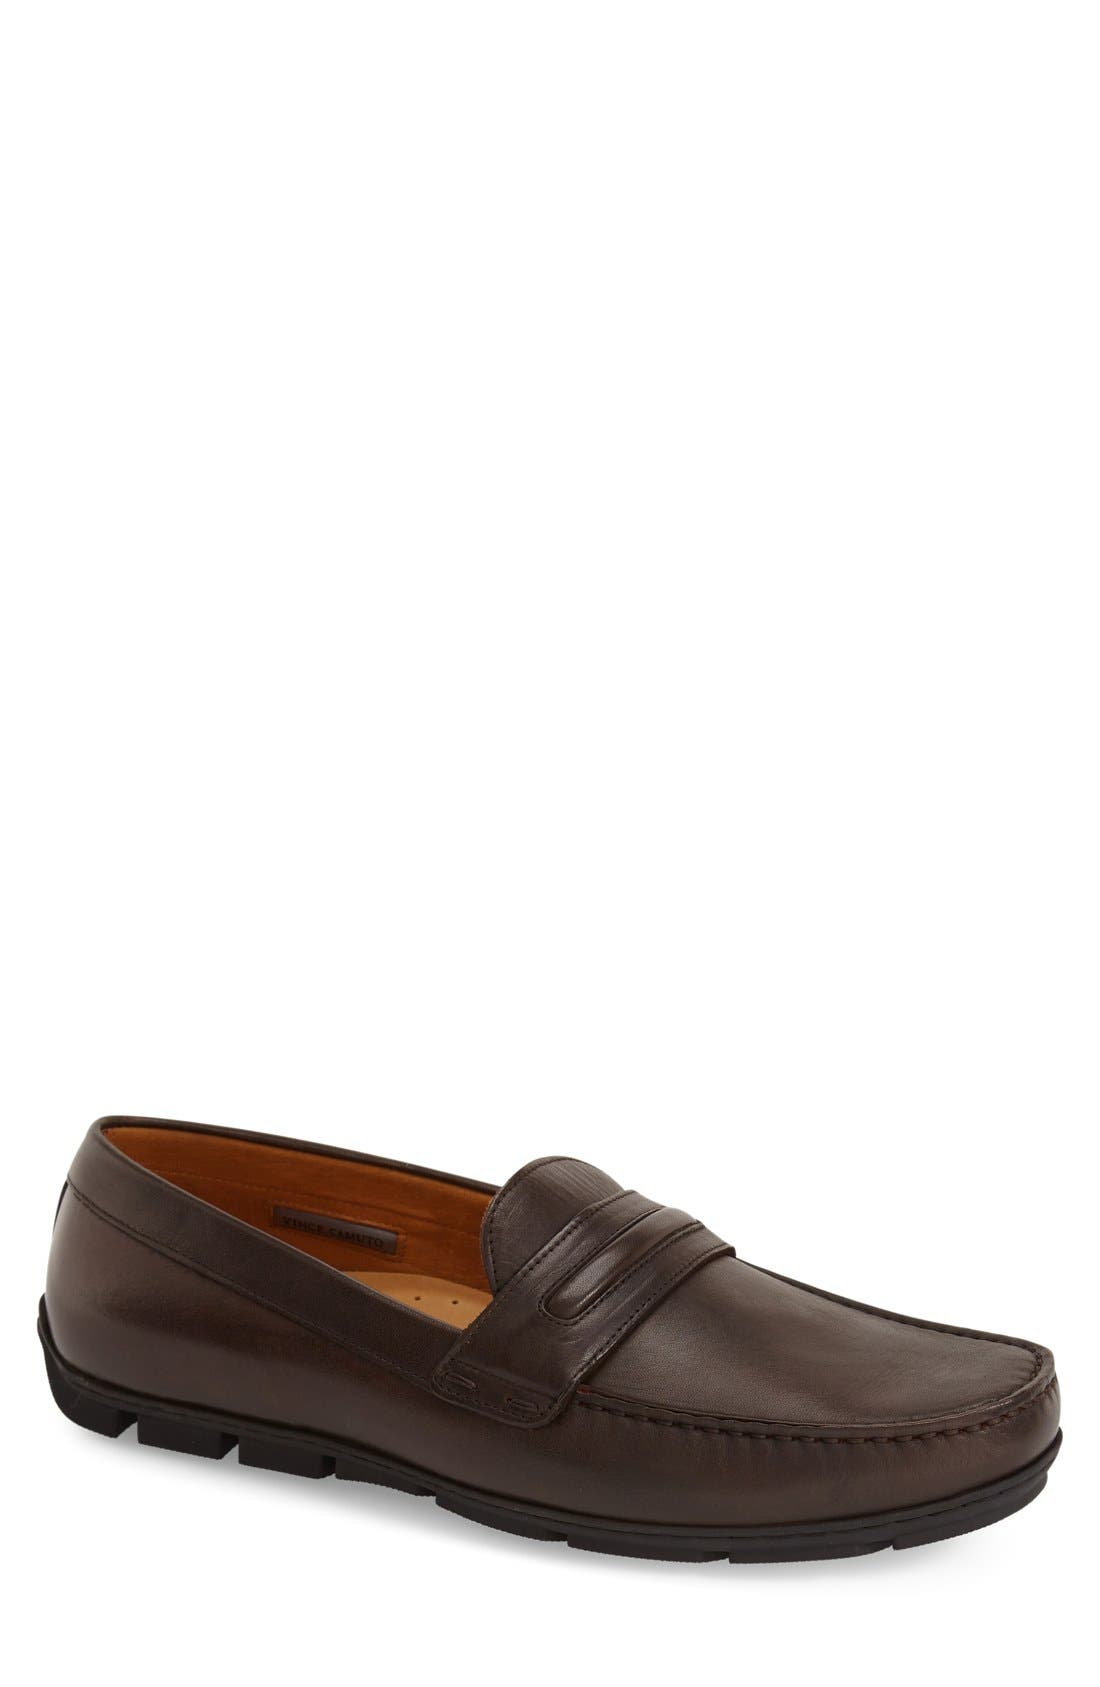 'Donte' Driving Shoe,                         Main,                         color, Espresso Leather